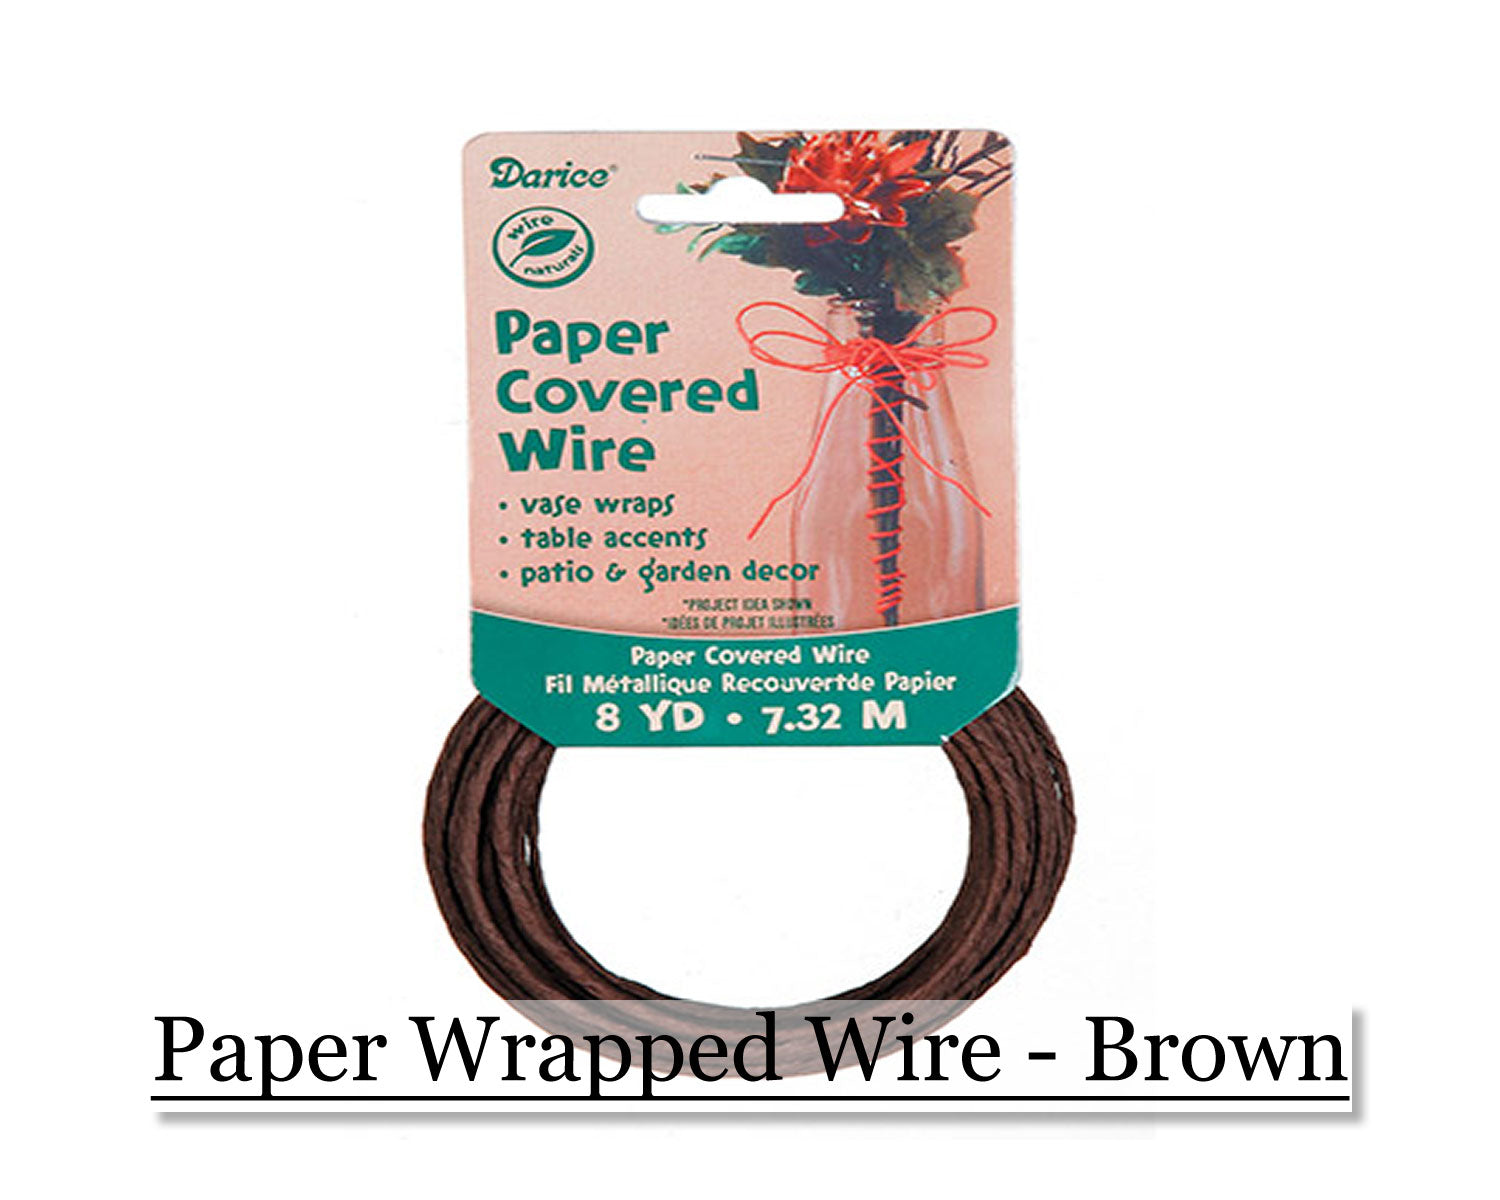 Paper wrapped wire - Brown